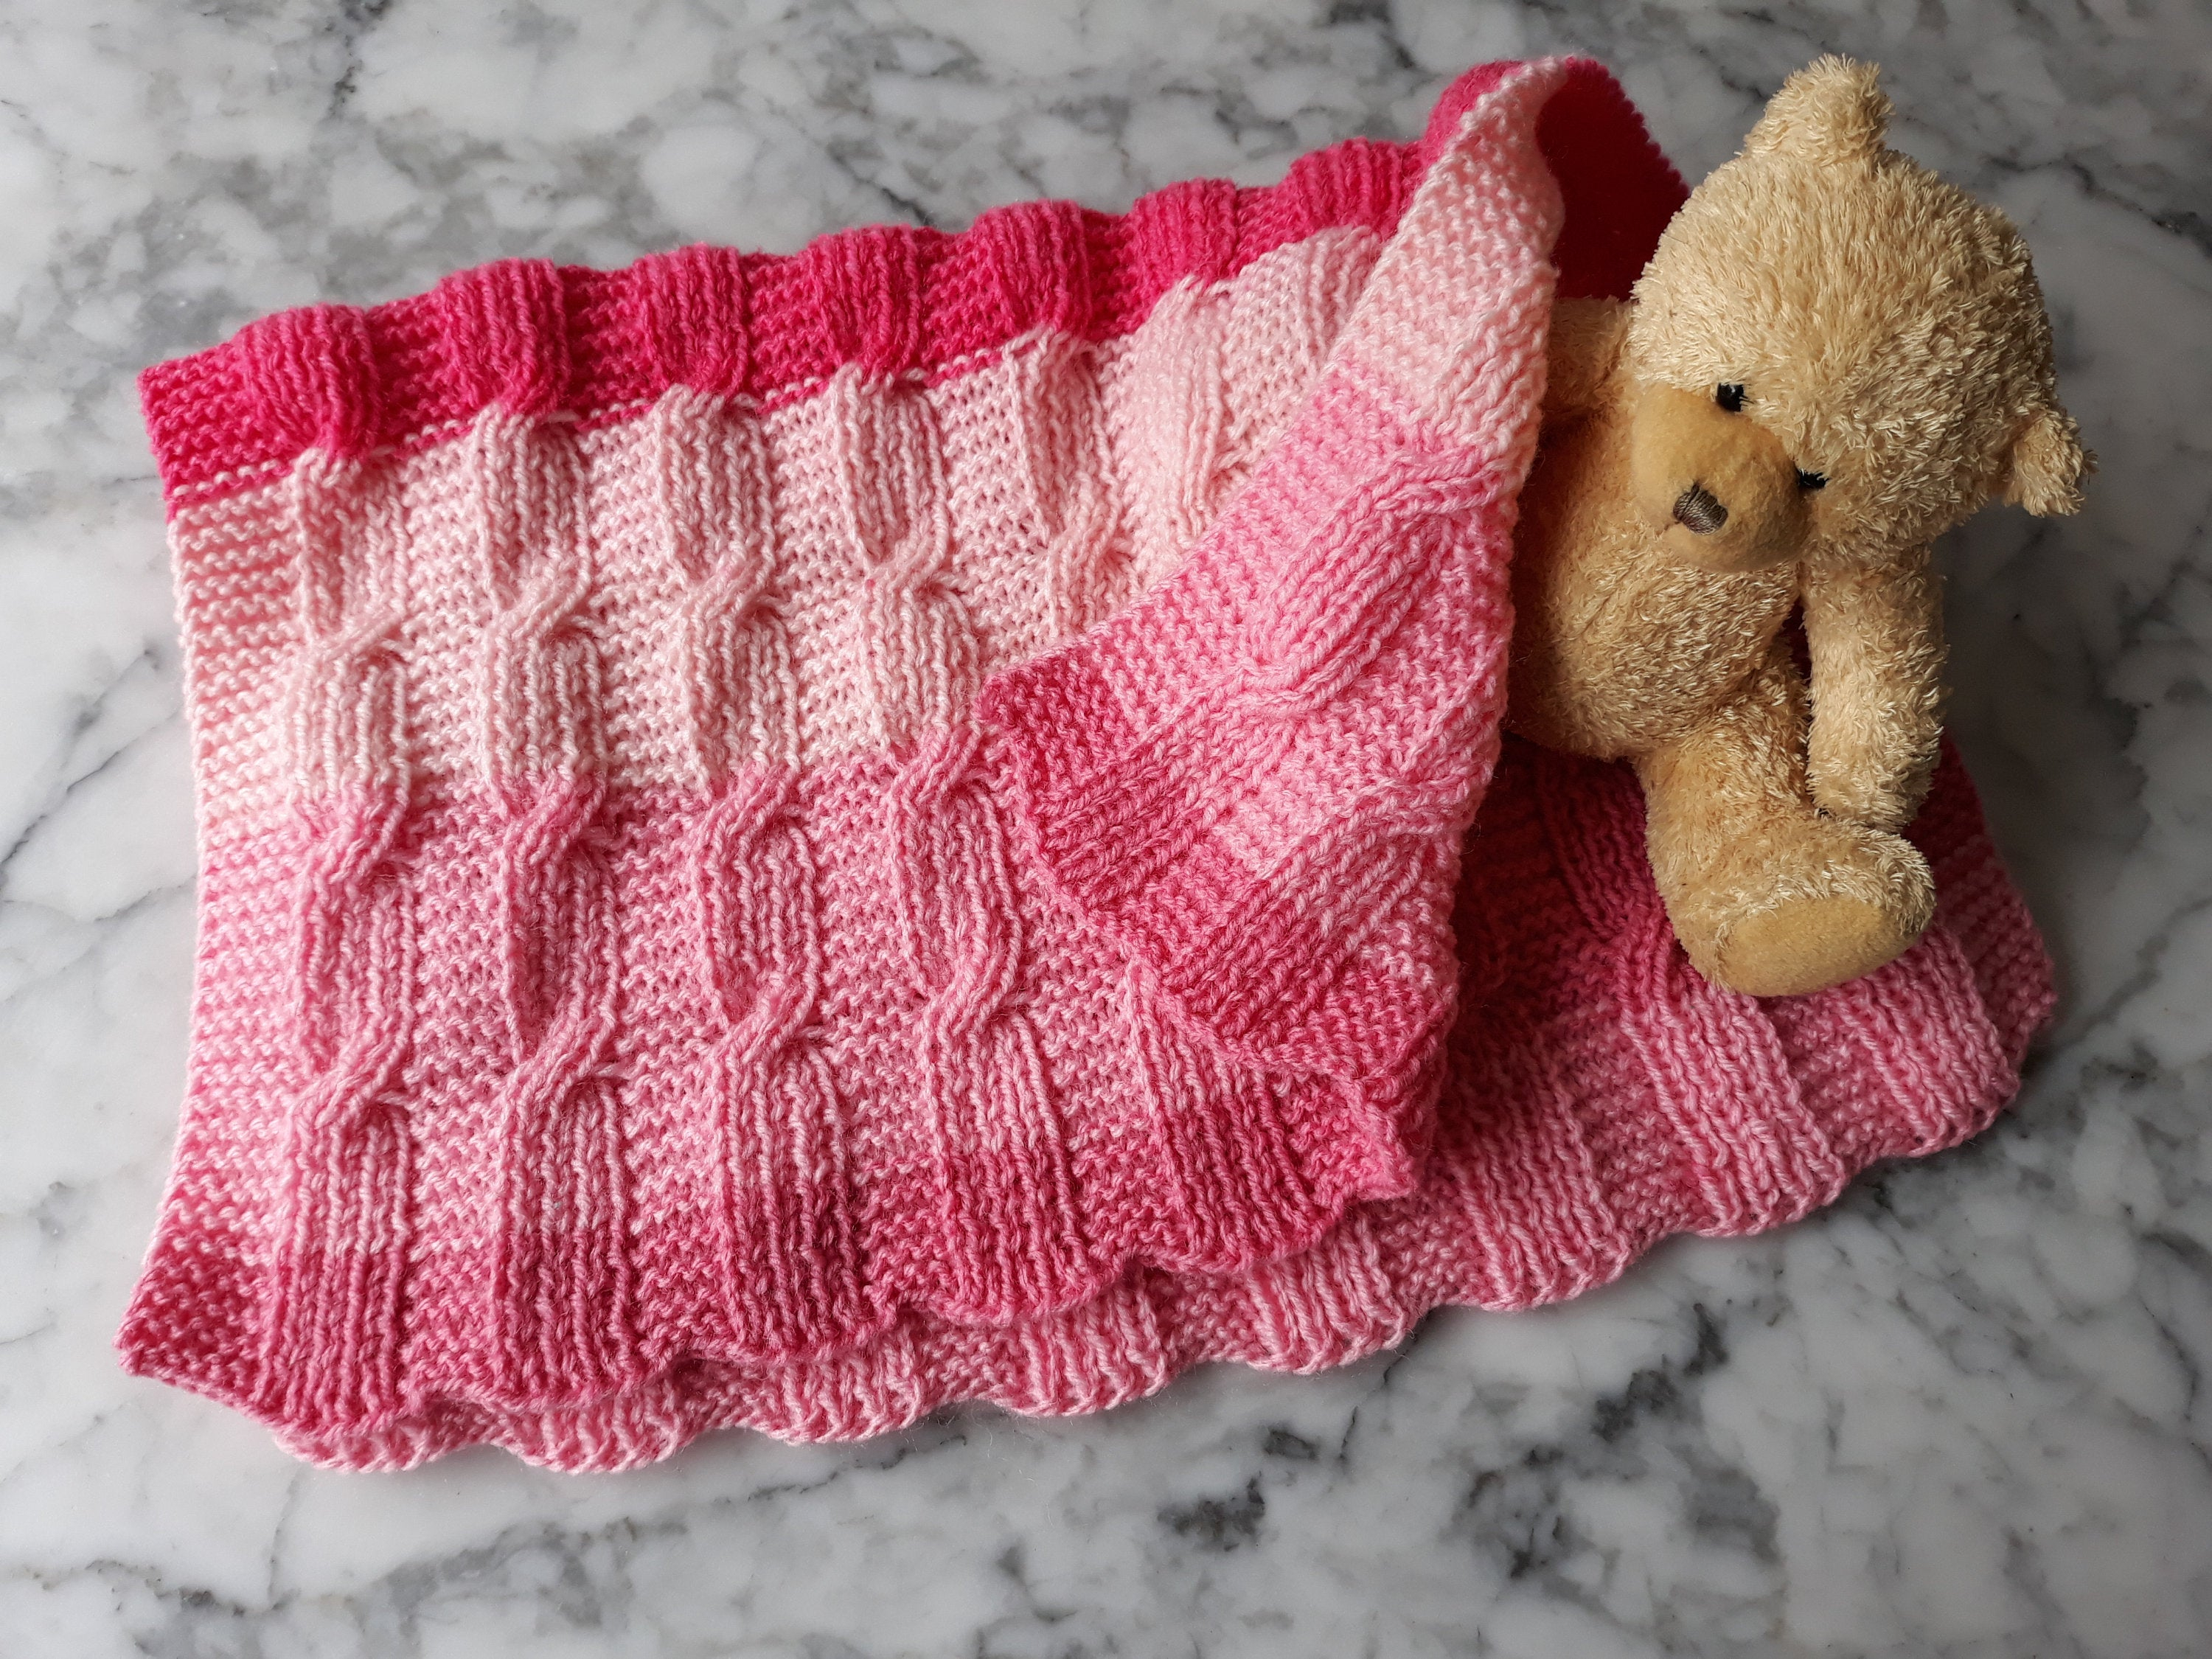 Knitting Patterns For Baby Blankets Easy Ba Blanket Knitting Pattern Instant Download Pdf Easy Aran